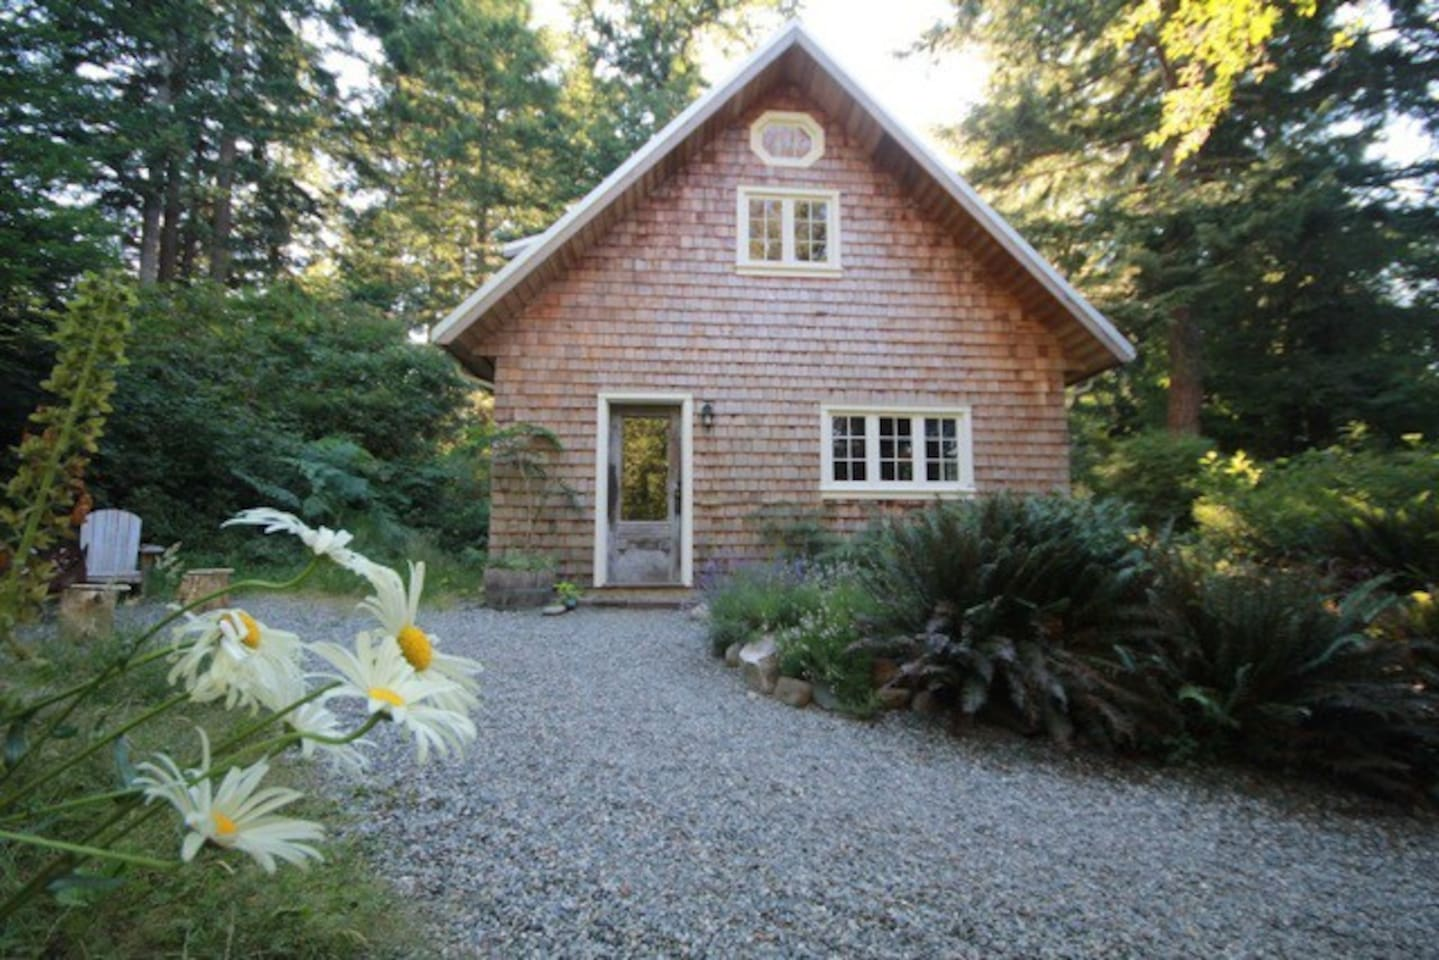 Perrywinkle Cottage - a delightful cottage on a forested rural property full of quirk and charm.